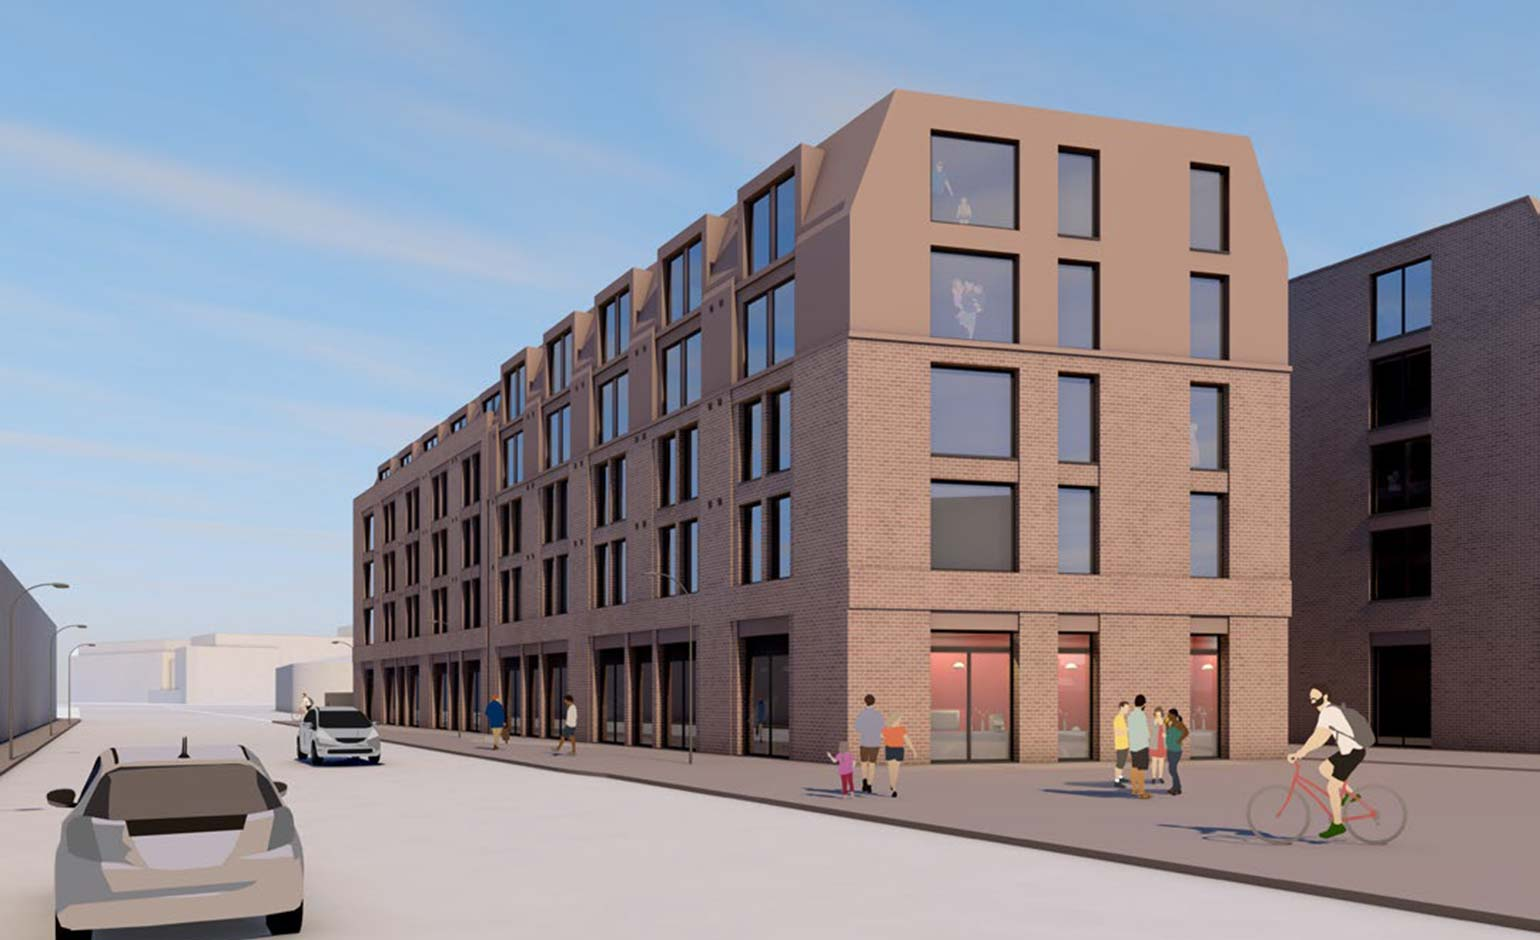 Plans submitted to build student accommodation on Mini dealership site | Bath Echo